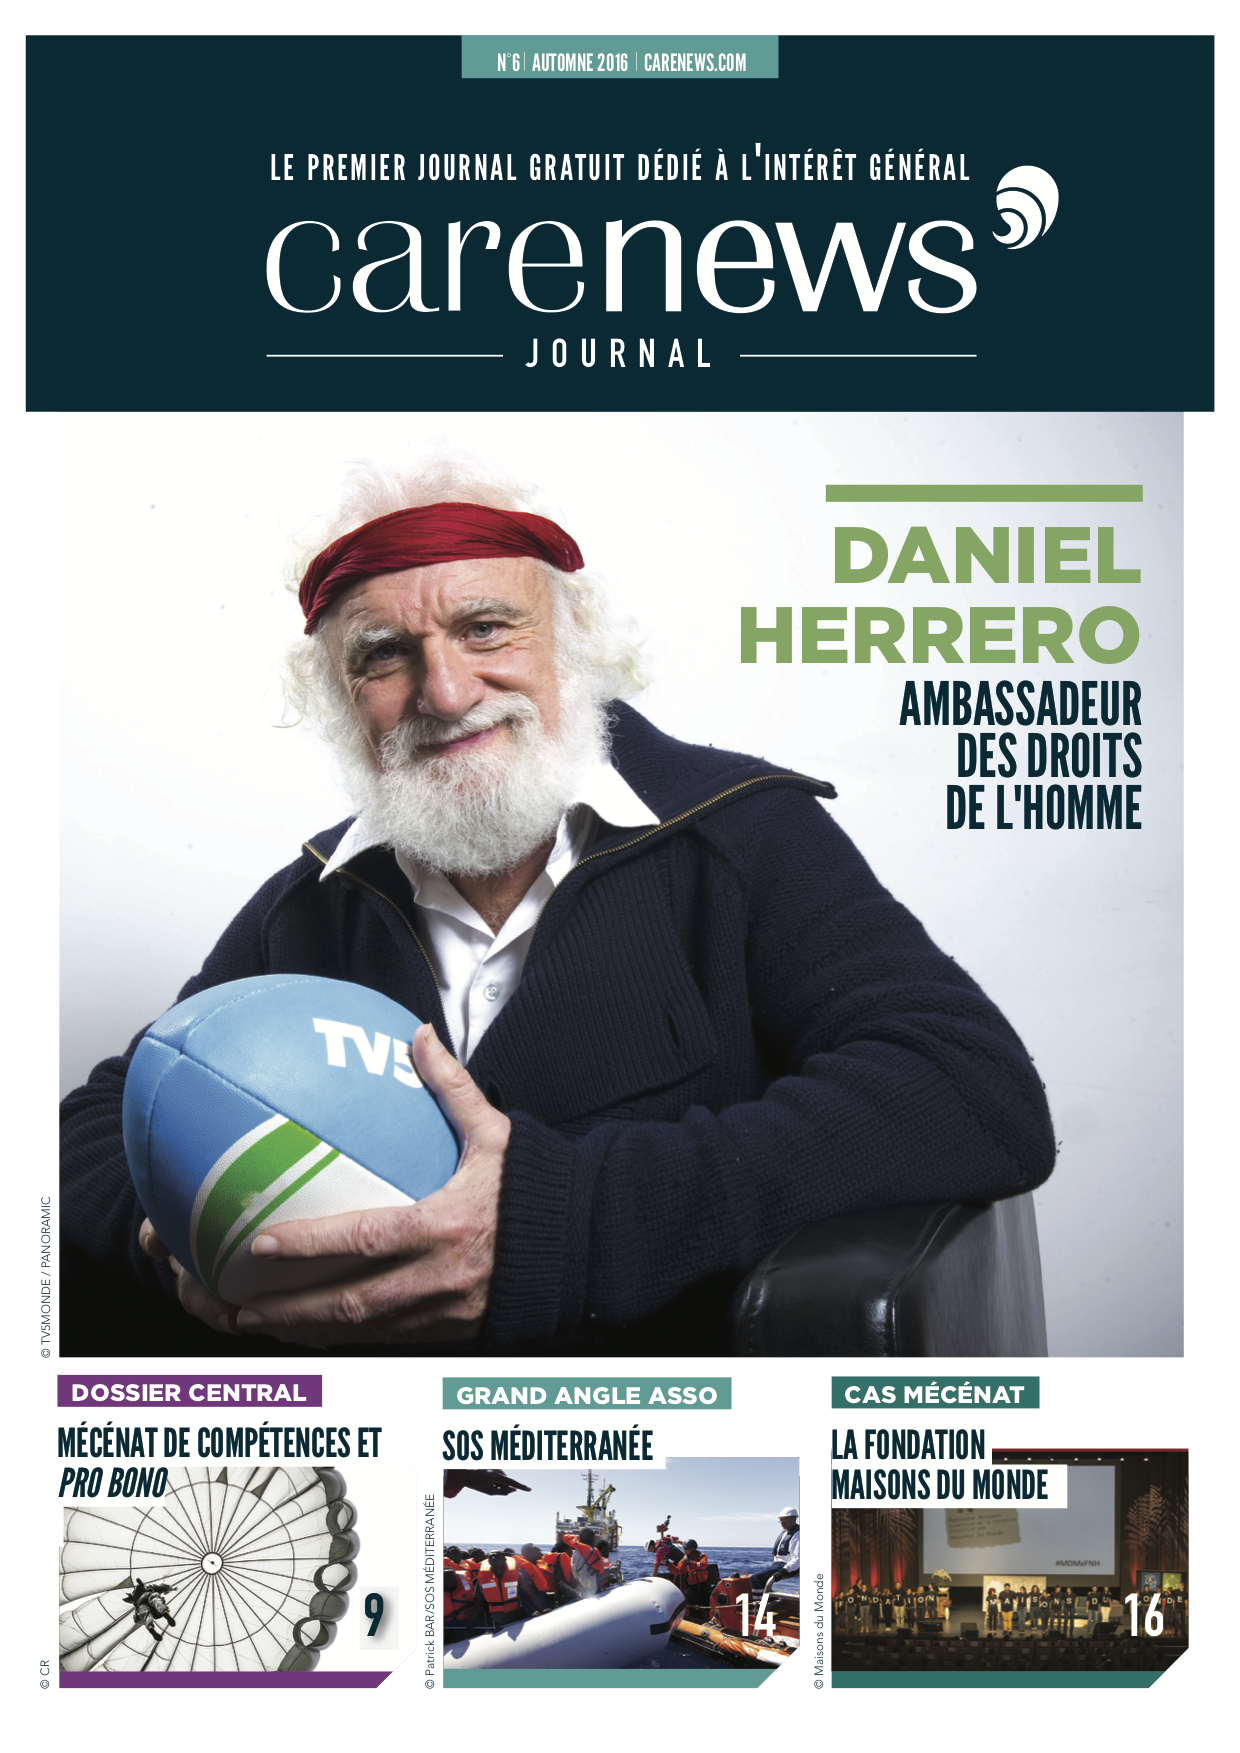 Carenews Journal n°6